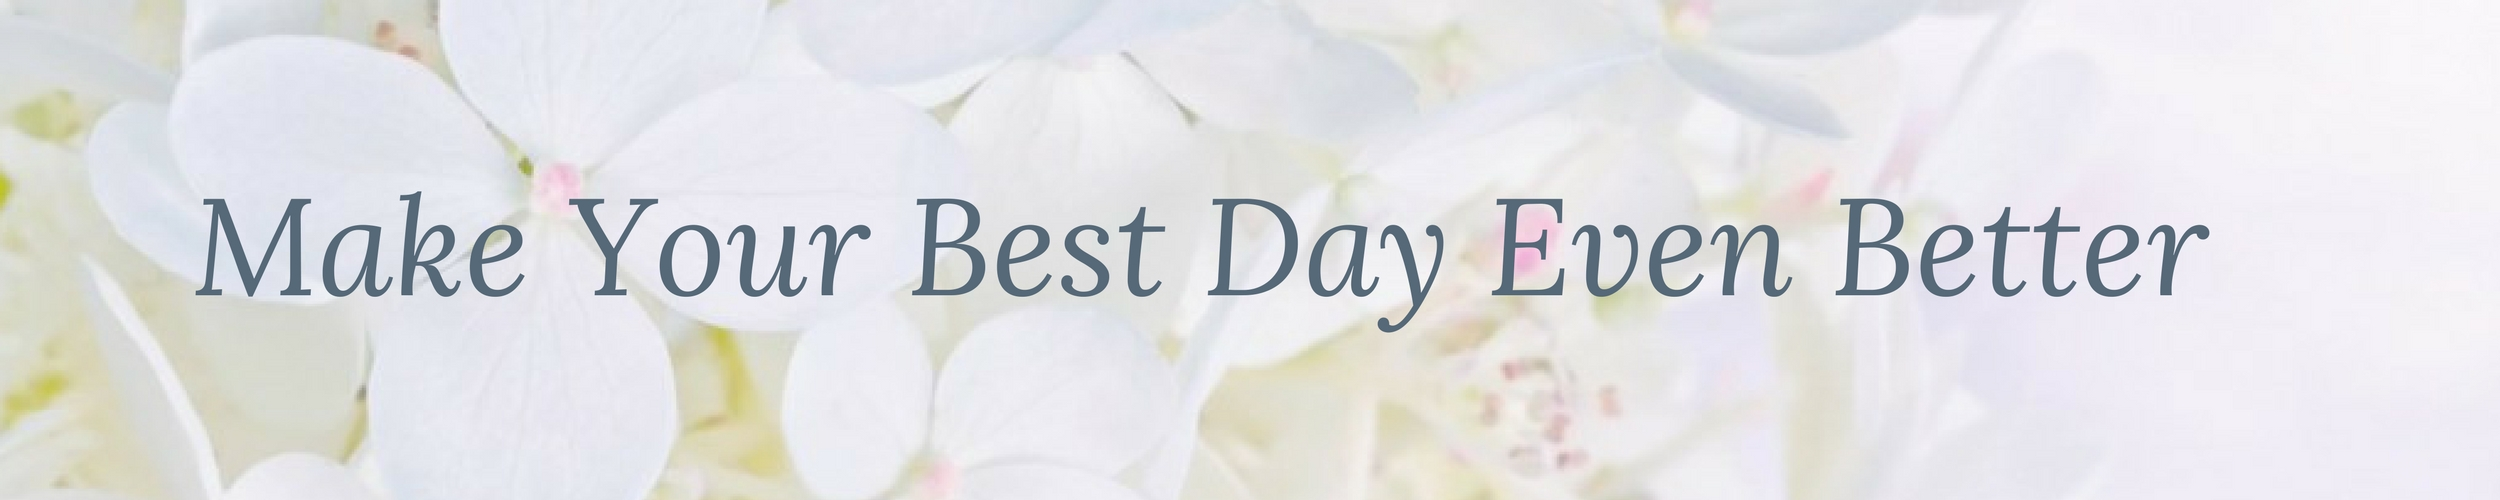 Make Your Best Day Even Better